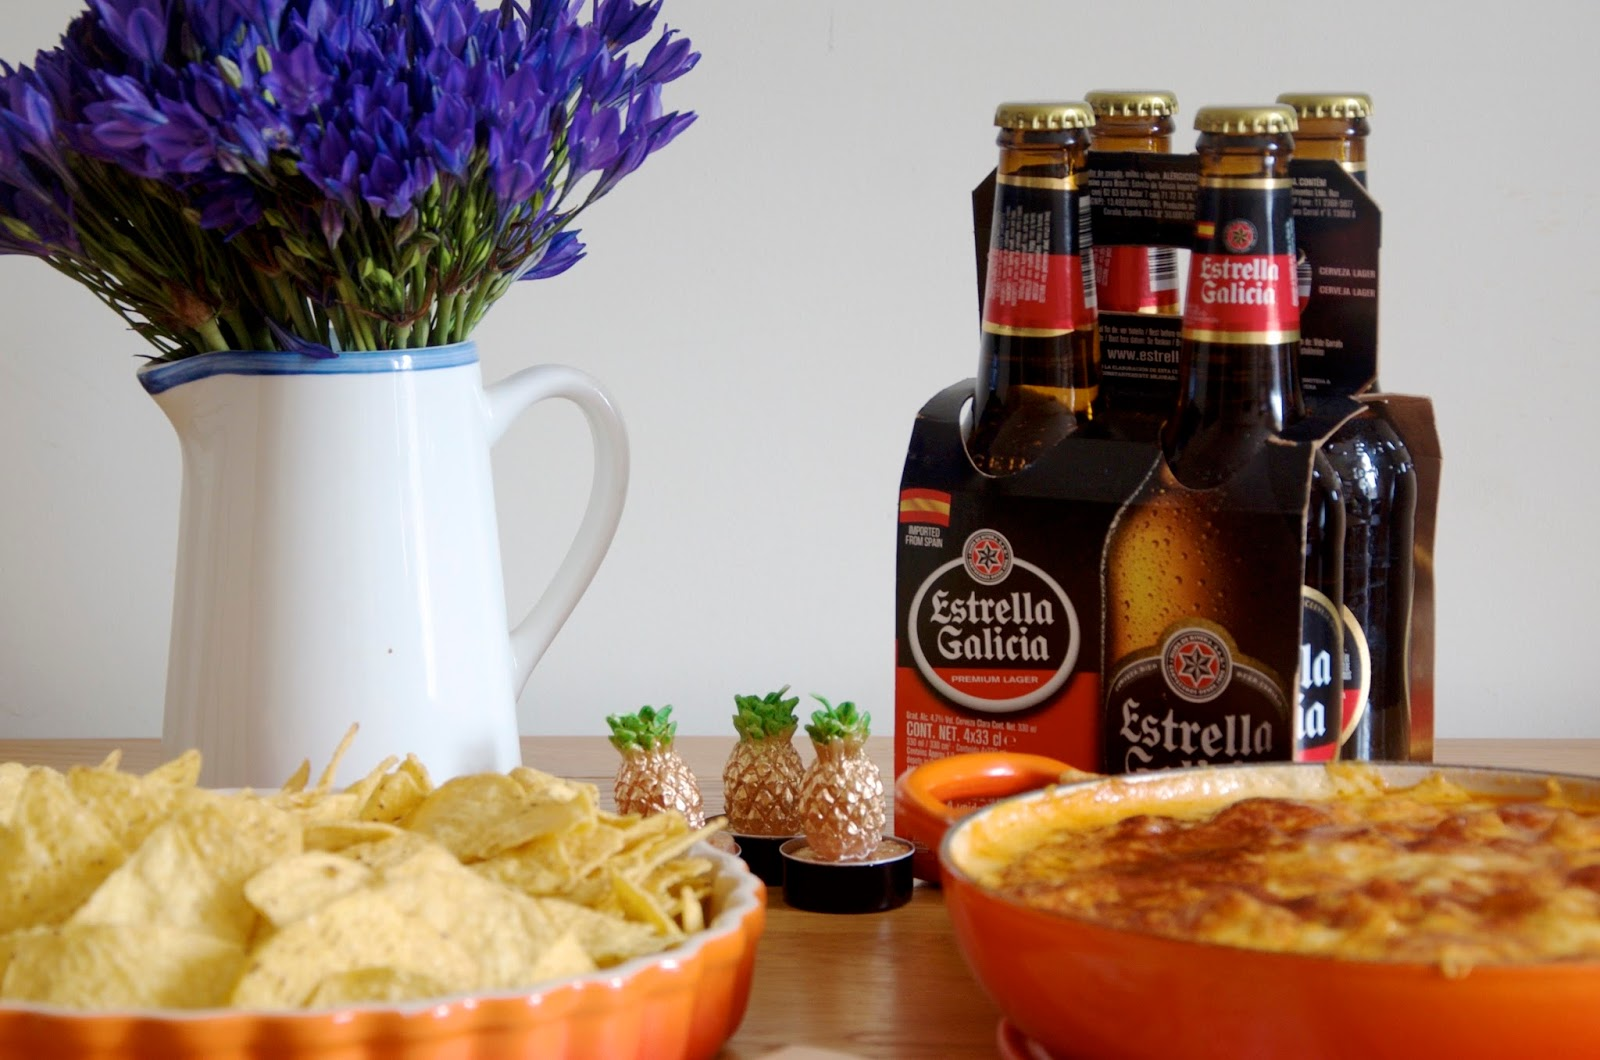 Buffalo Chicken Dip in le creuset casserole, estrella galicia beer, pineapple candles and purple flowers